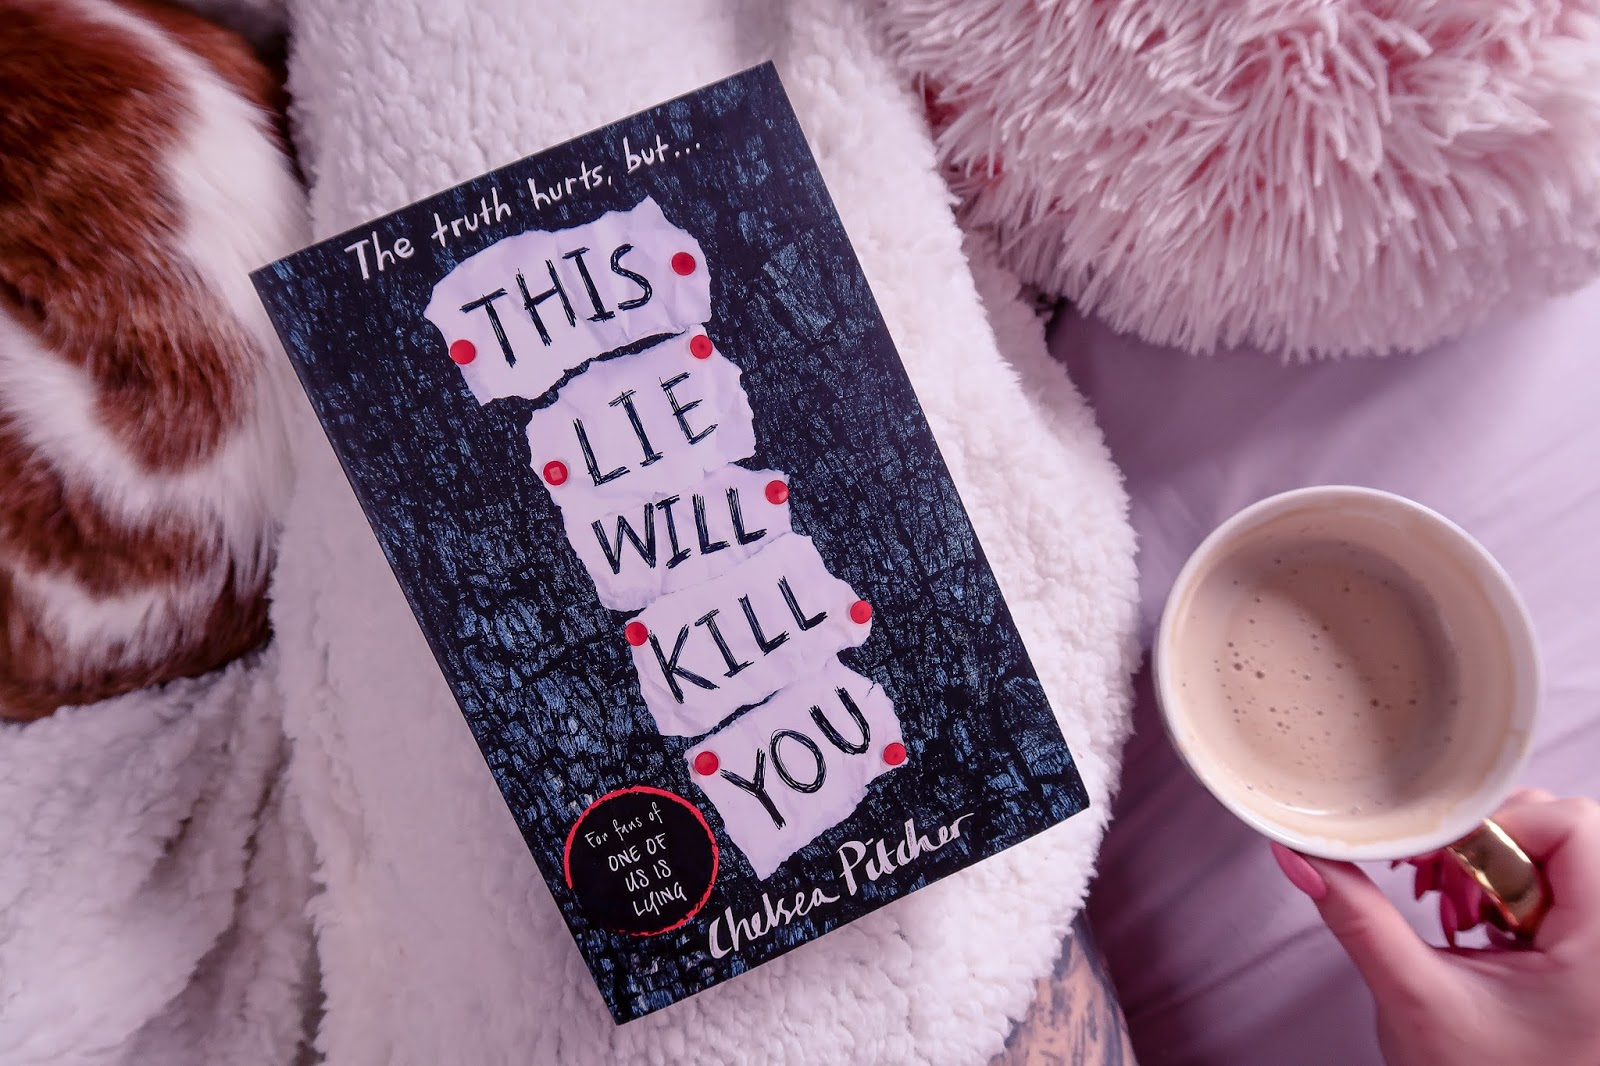 Birds eye view but closer up angle of the book This Lie Will Kill You by Chelsea Pitcher on a white blanket and a cat in the background and pink pillow out of focus with ofaglasgowgirl holding a mug